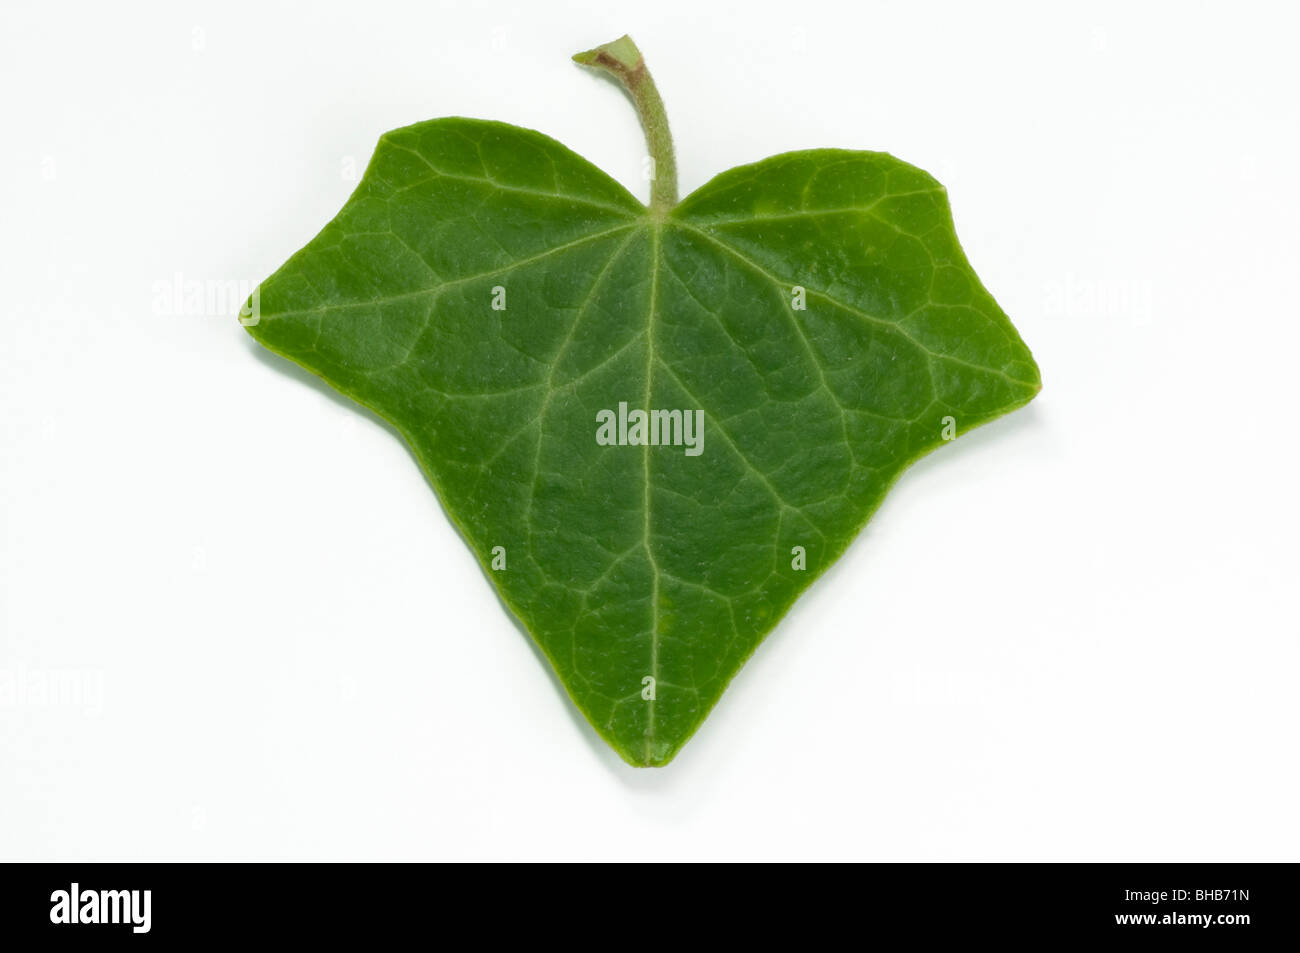 Common Ivy, English Ivy (Hedera helix), leaf, studio picture. - Stock Image